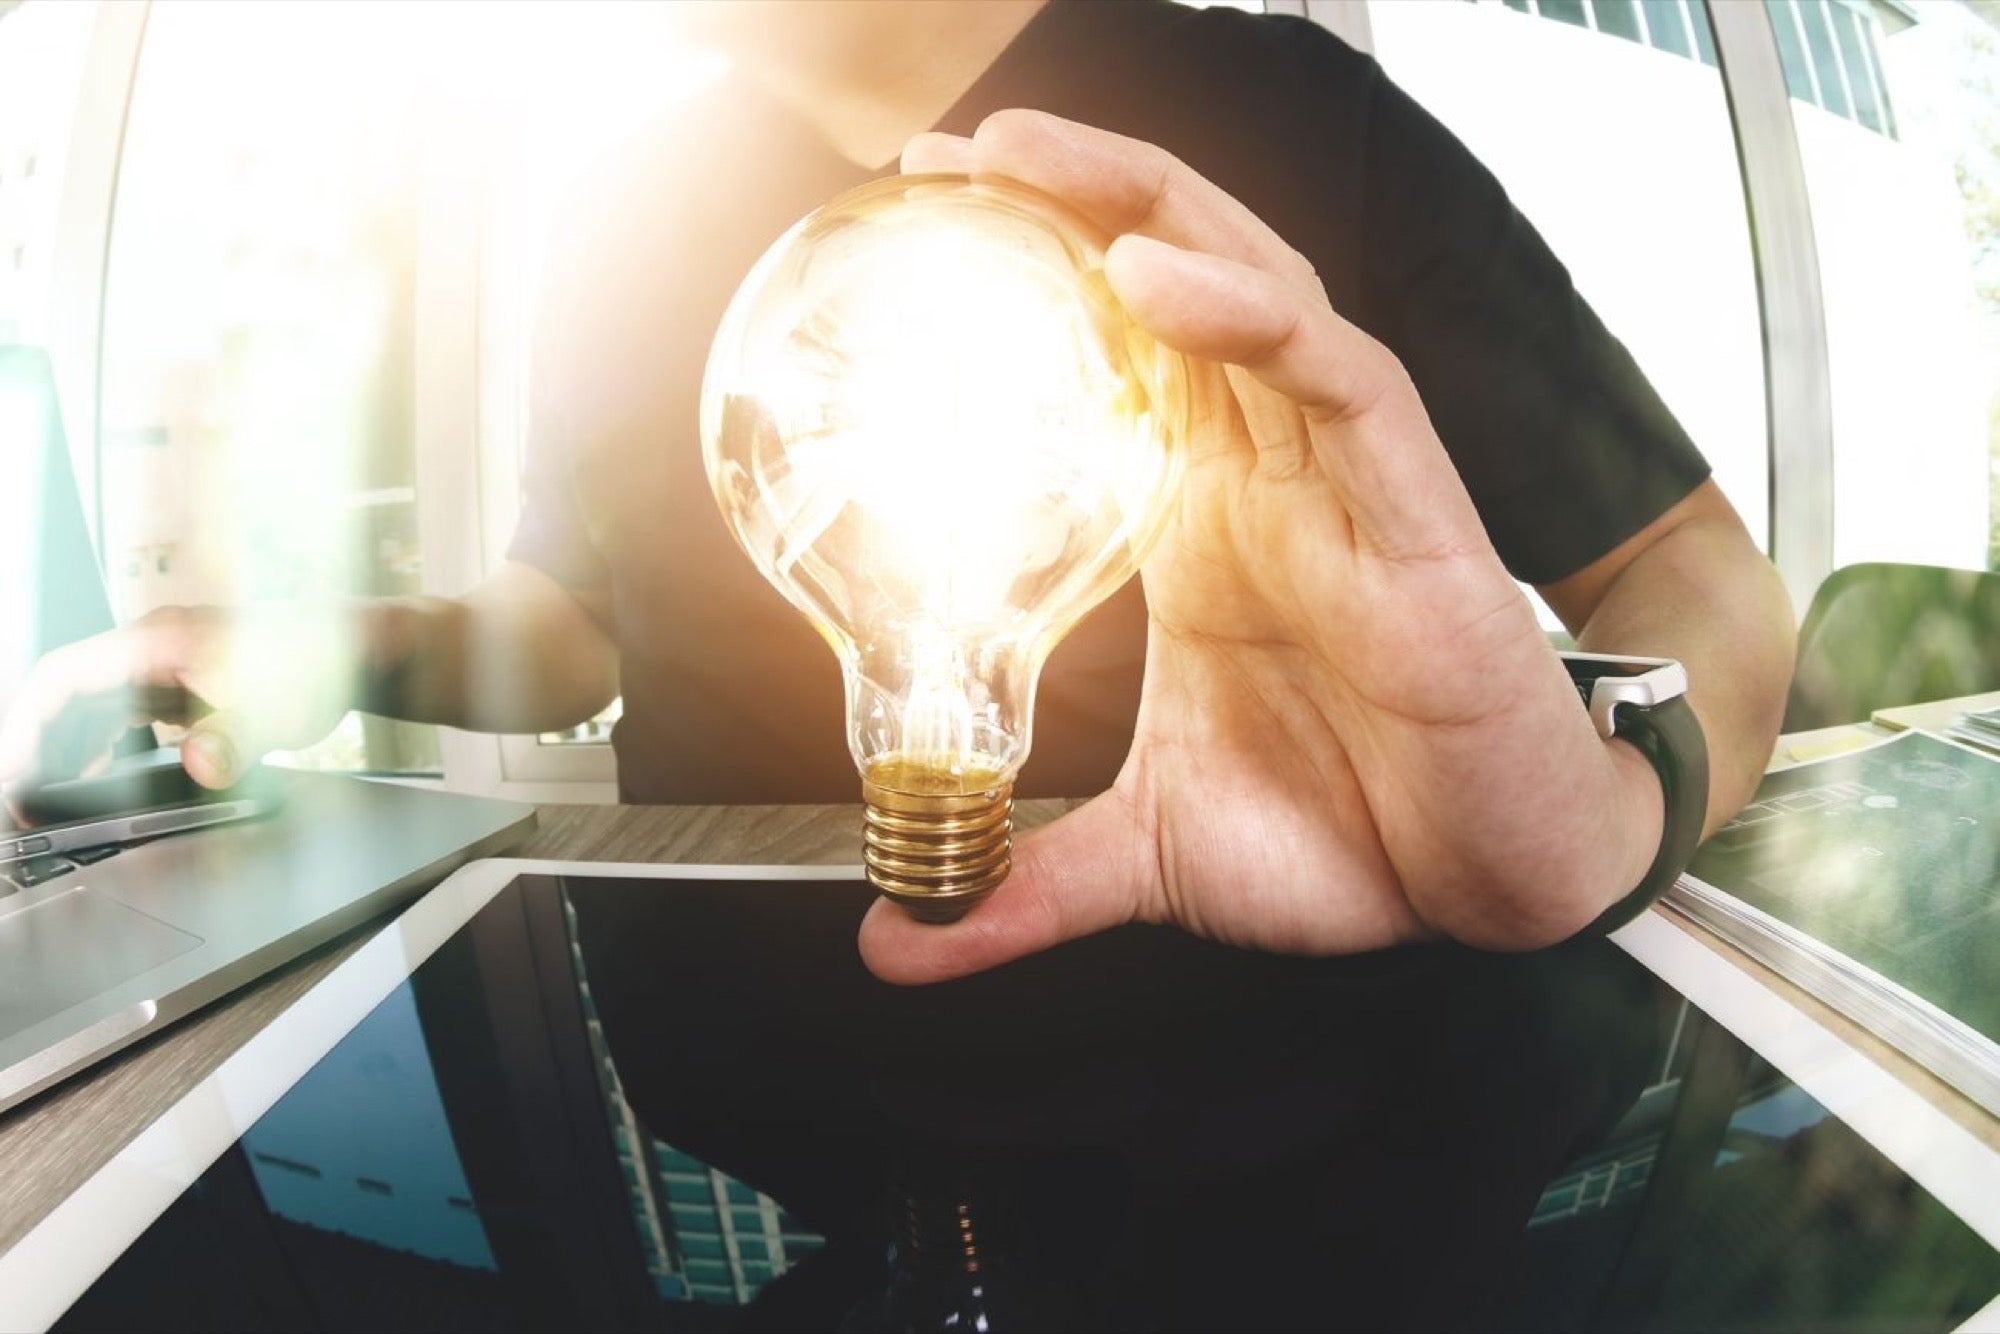 Turn your business idea into reality